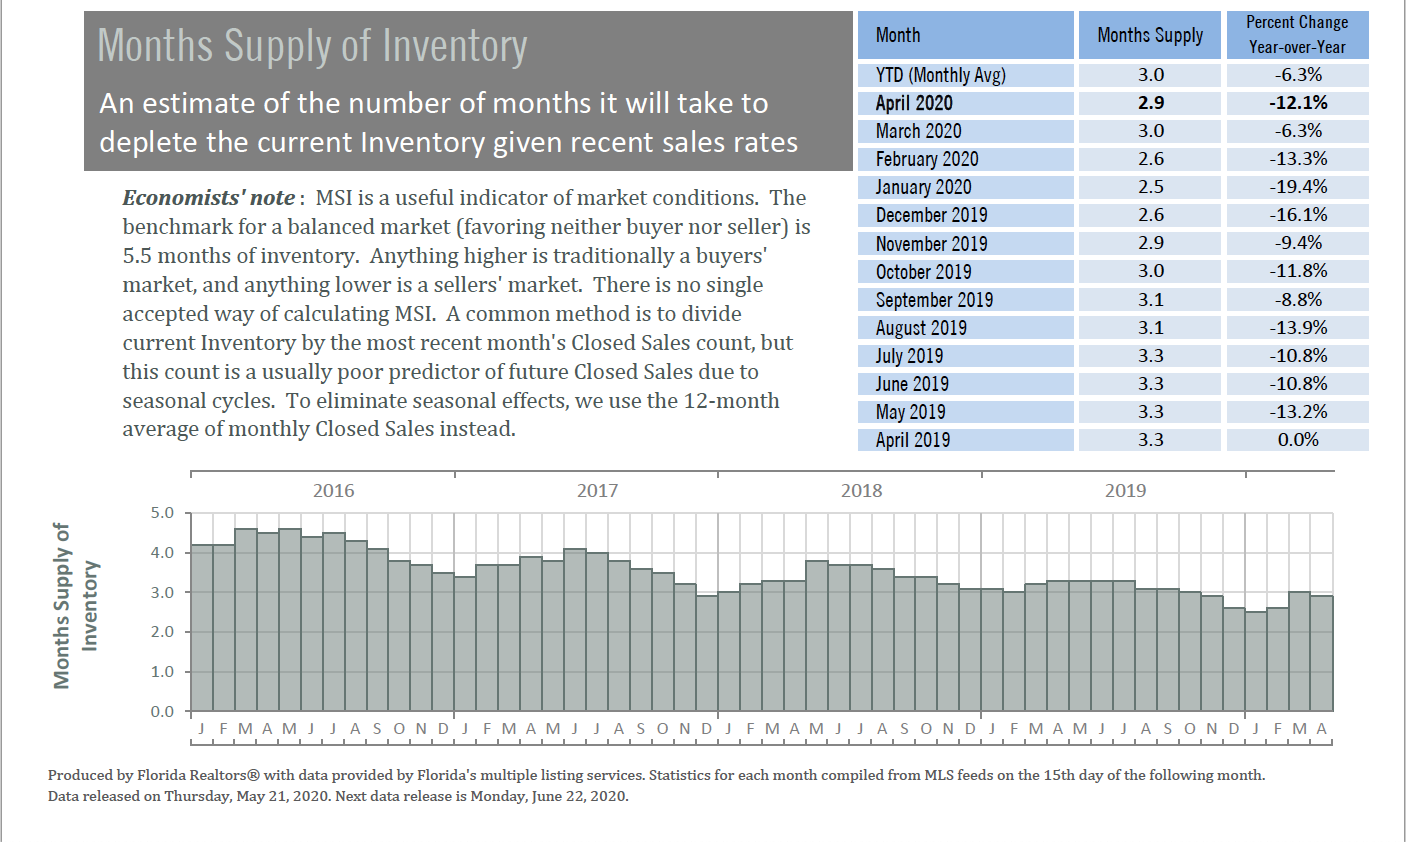 Alachua County homes - Months Supply of Inventory - April 2020